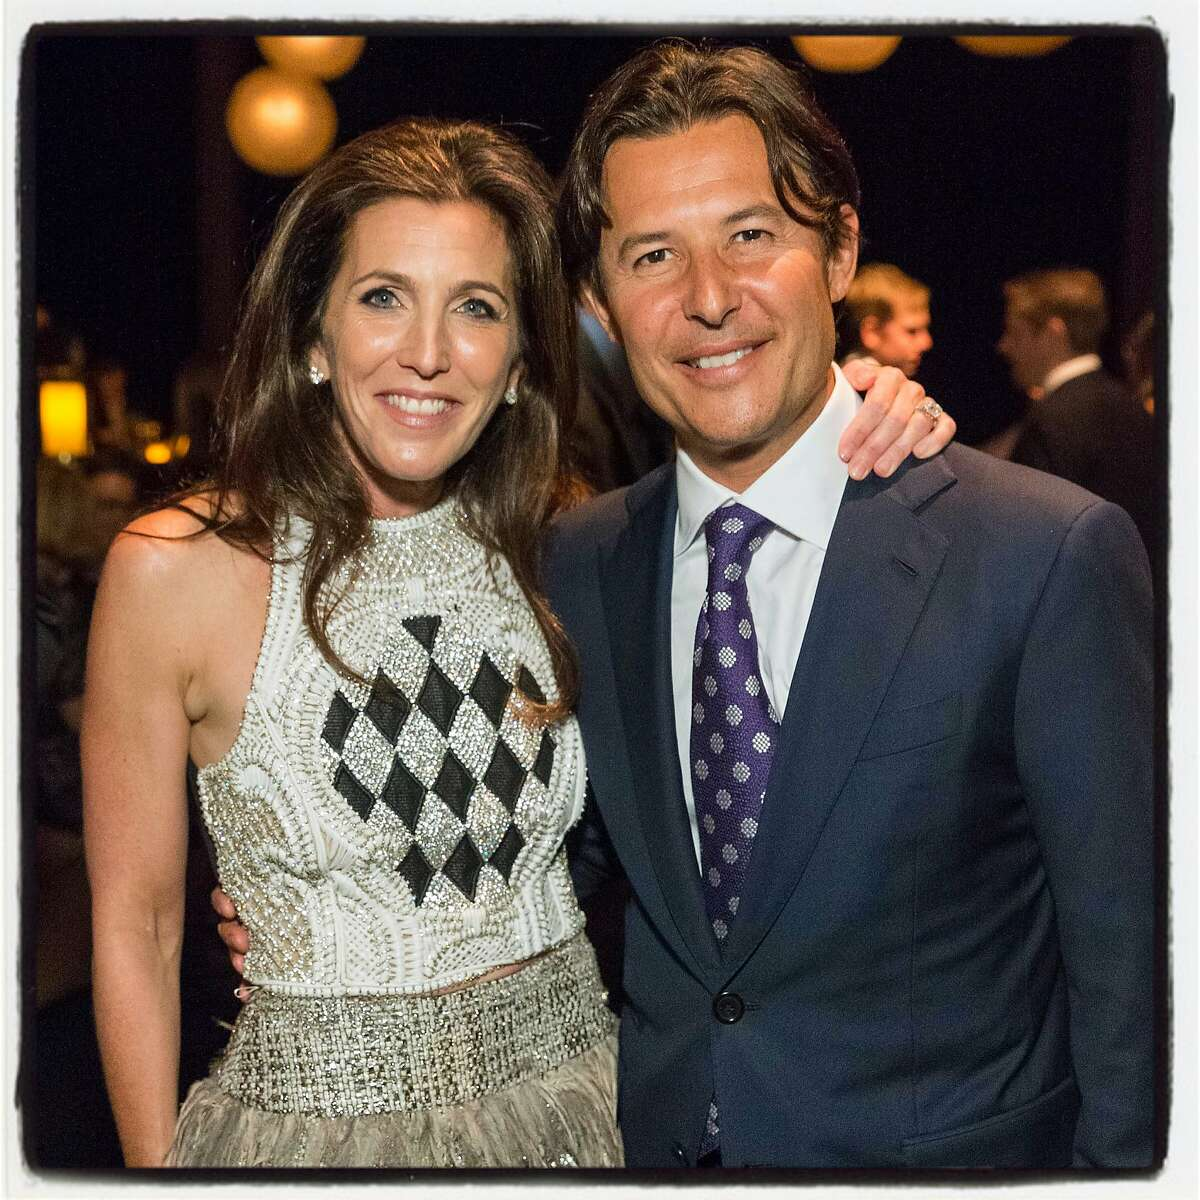 CPMC Foundation board co-chairwoman Sloan Barnett and her husband, Roger Barnett, at Pier 35 for the CPMC 2020 Gala. Feb 2016. By Drew Altizer.